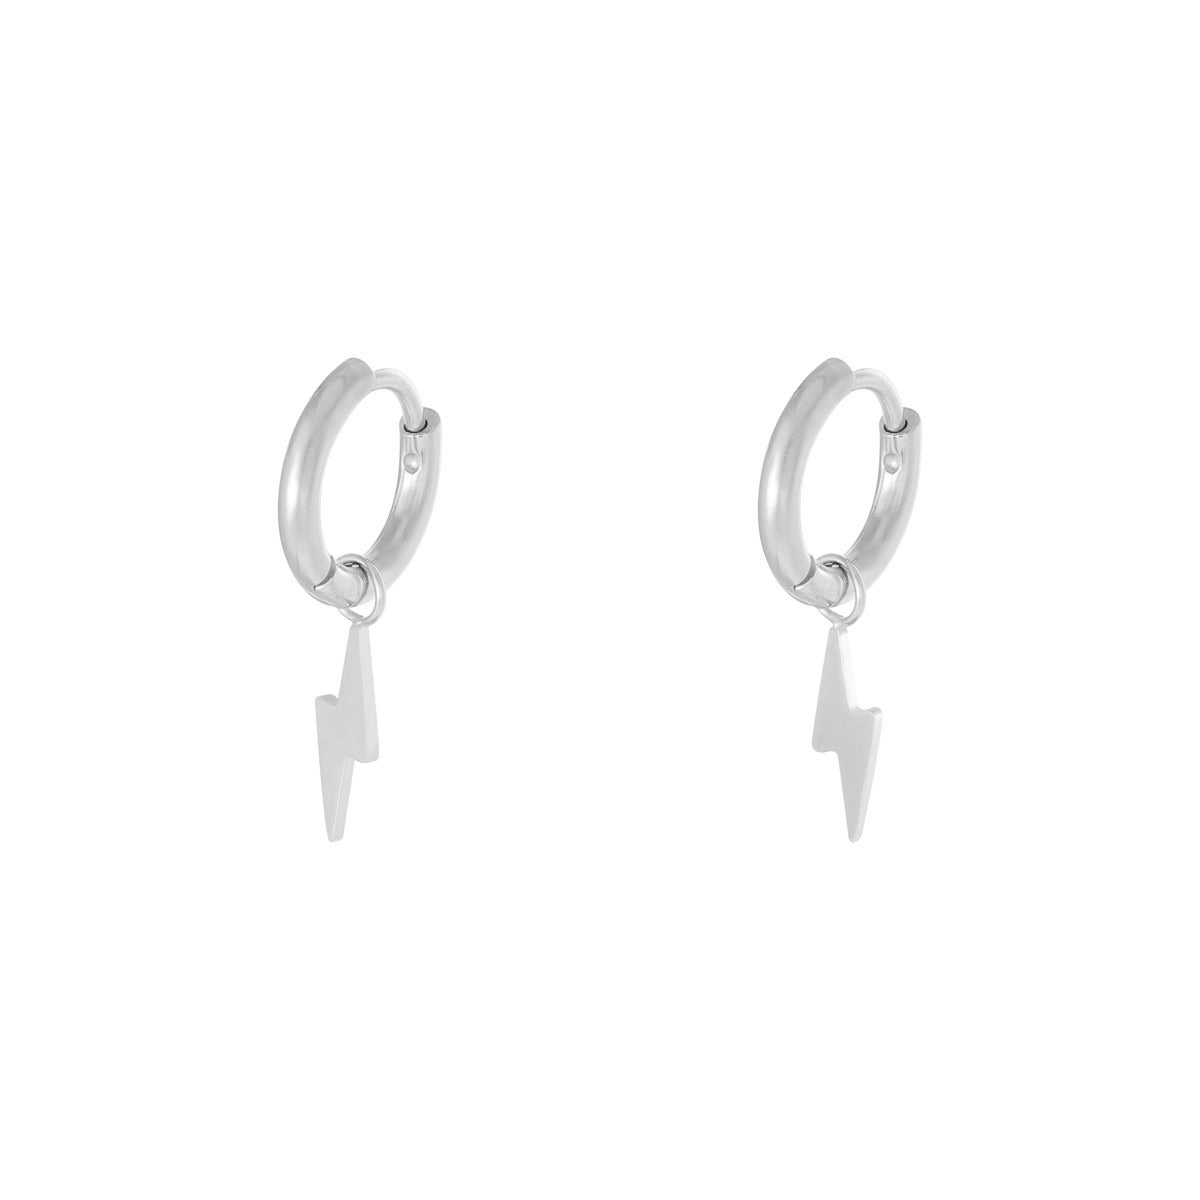 Mini Bolt Earrings - Silver